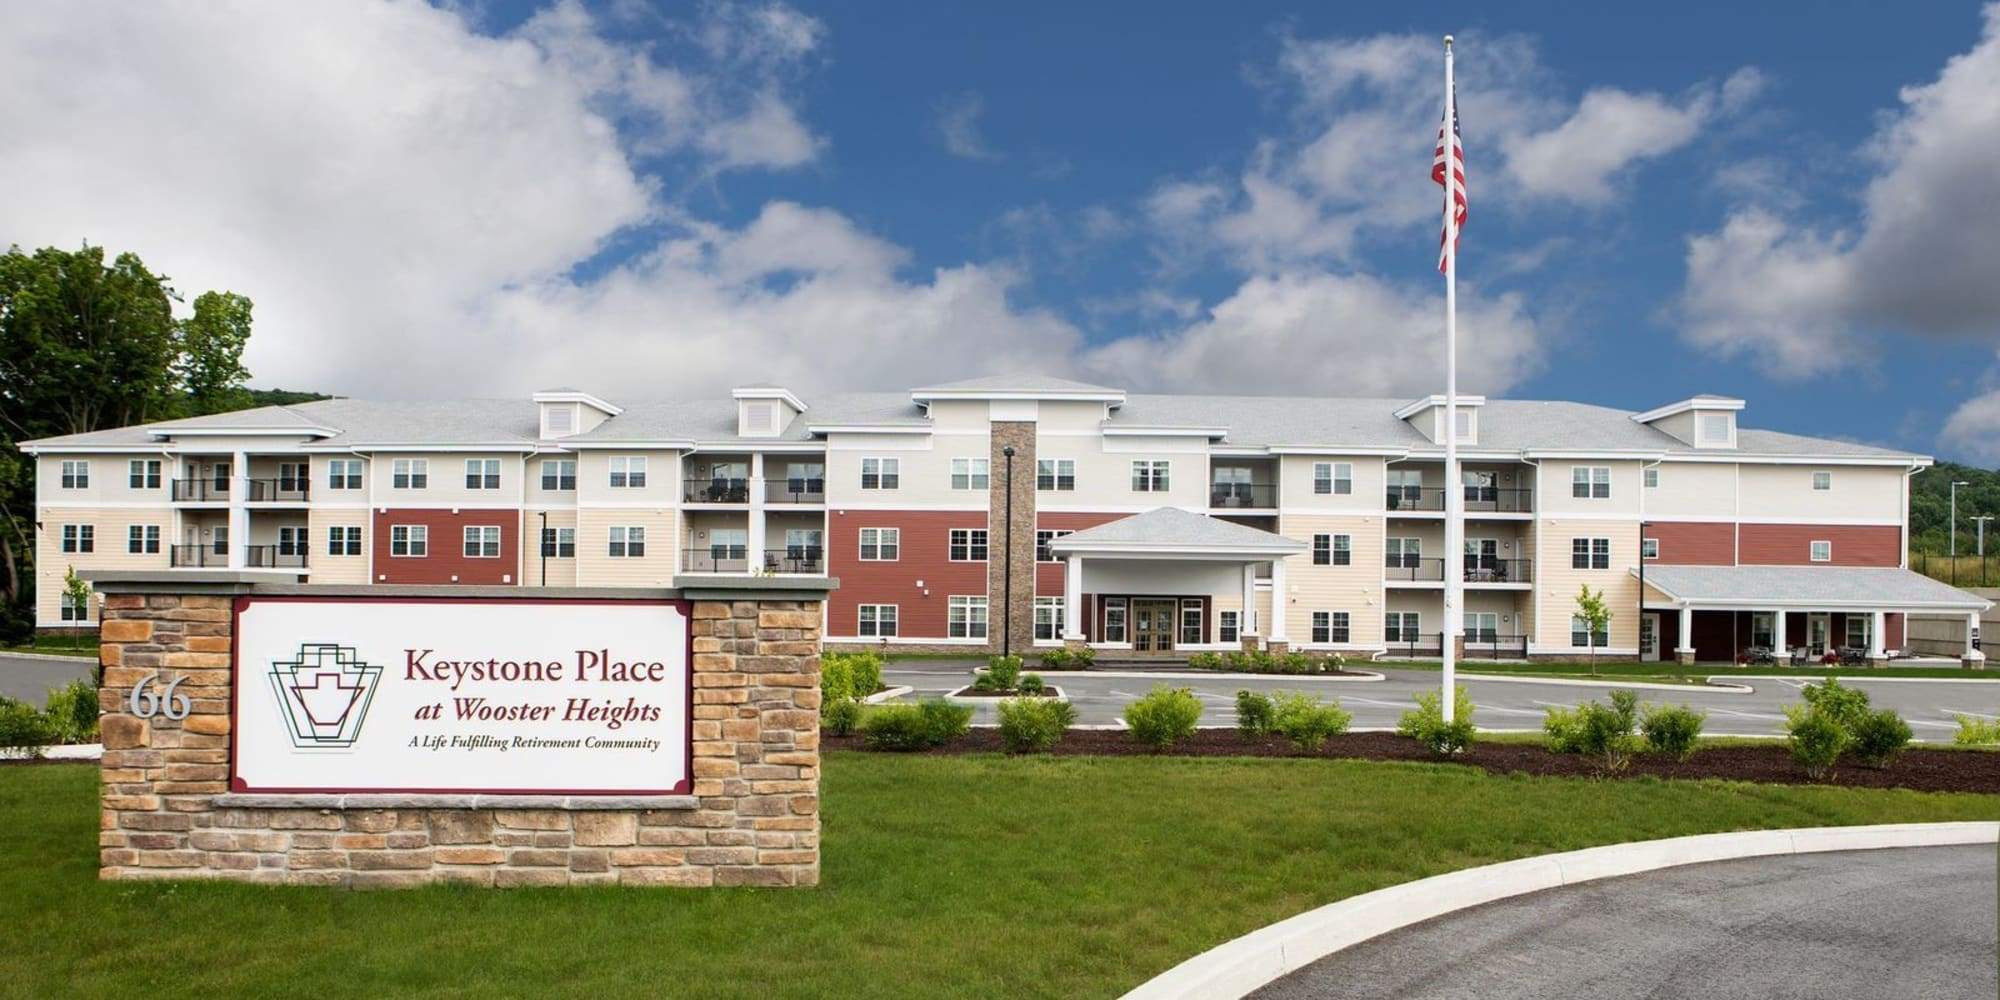 Rendering of Keystone Place at Wooster Heights in Danbury, Connecticut.